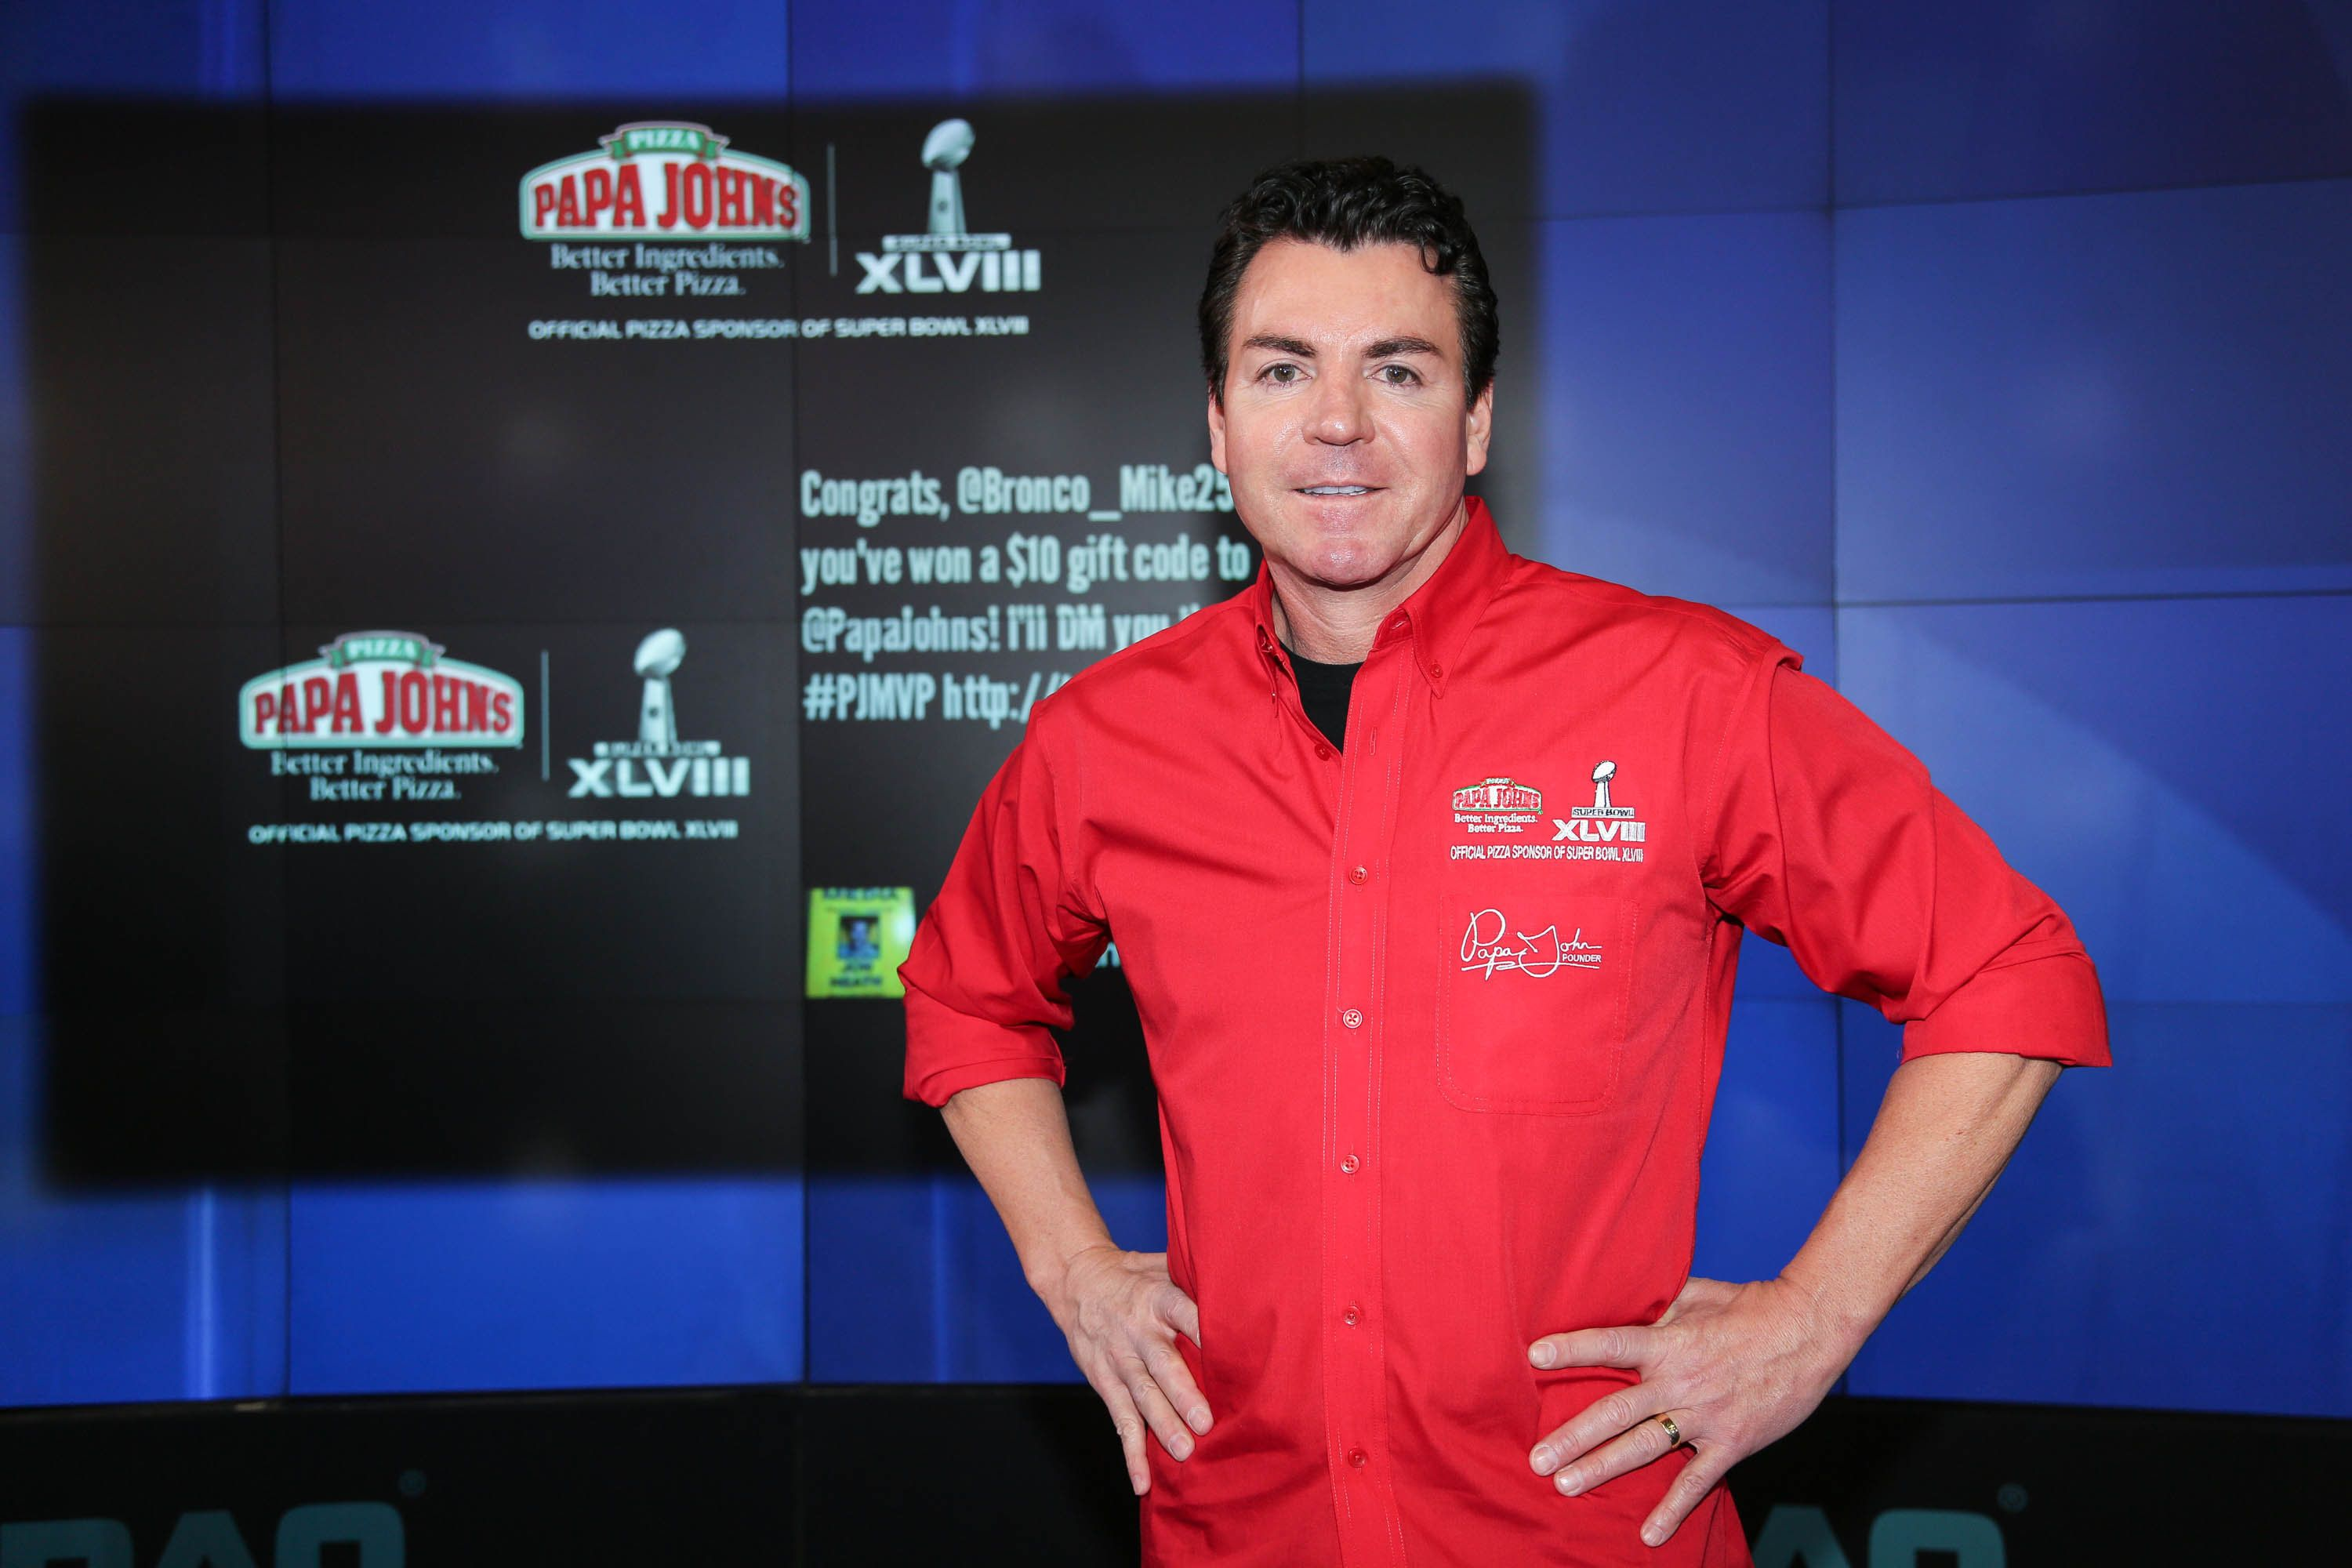 Papa John's Founder: I Shouldn't Have Stepped Down